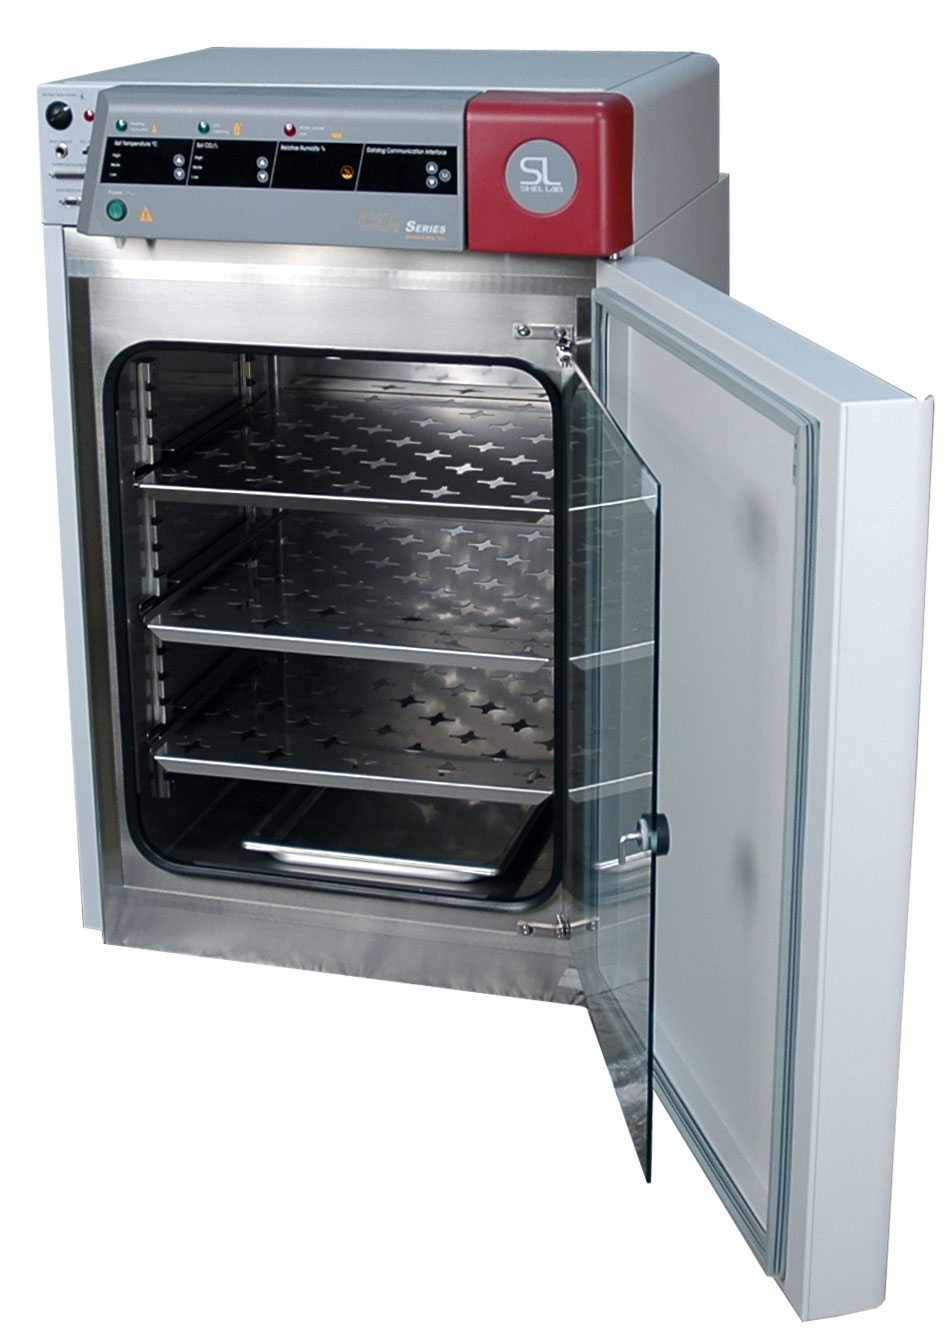 sheldon manufacturing  inc  continues expansion of the shel lab co2 incubator line with the new